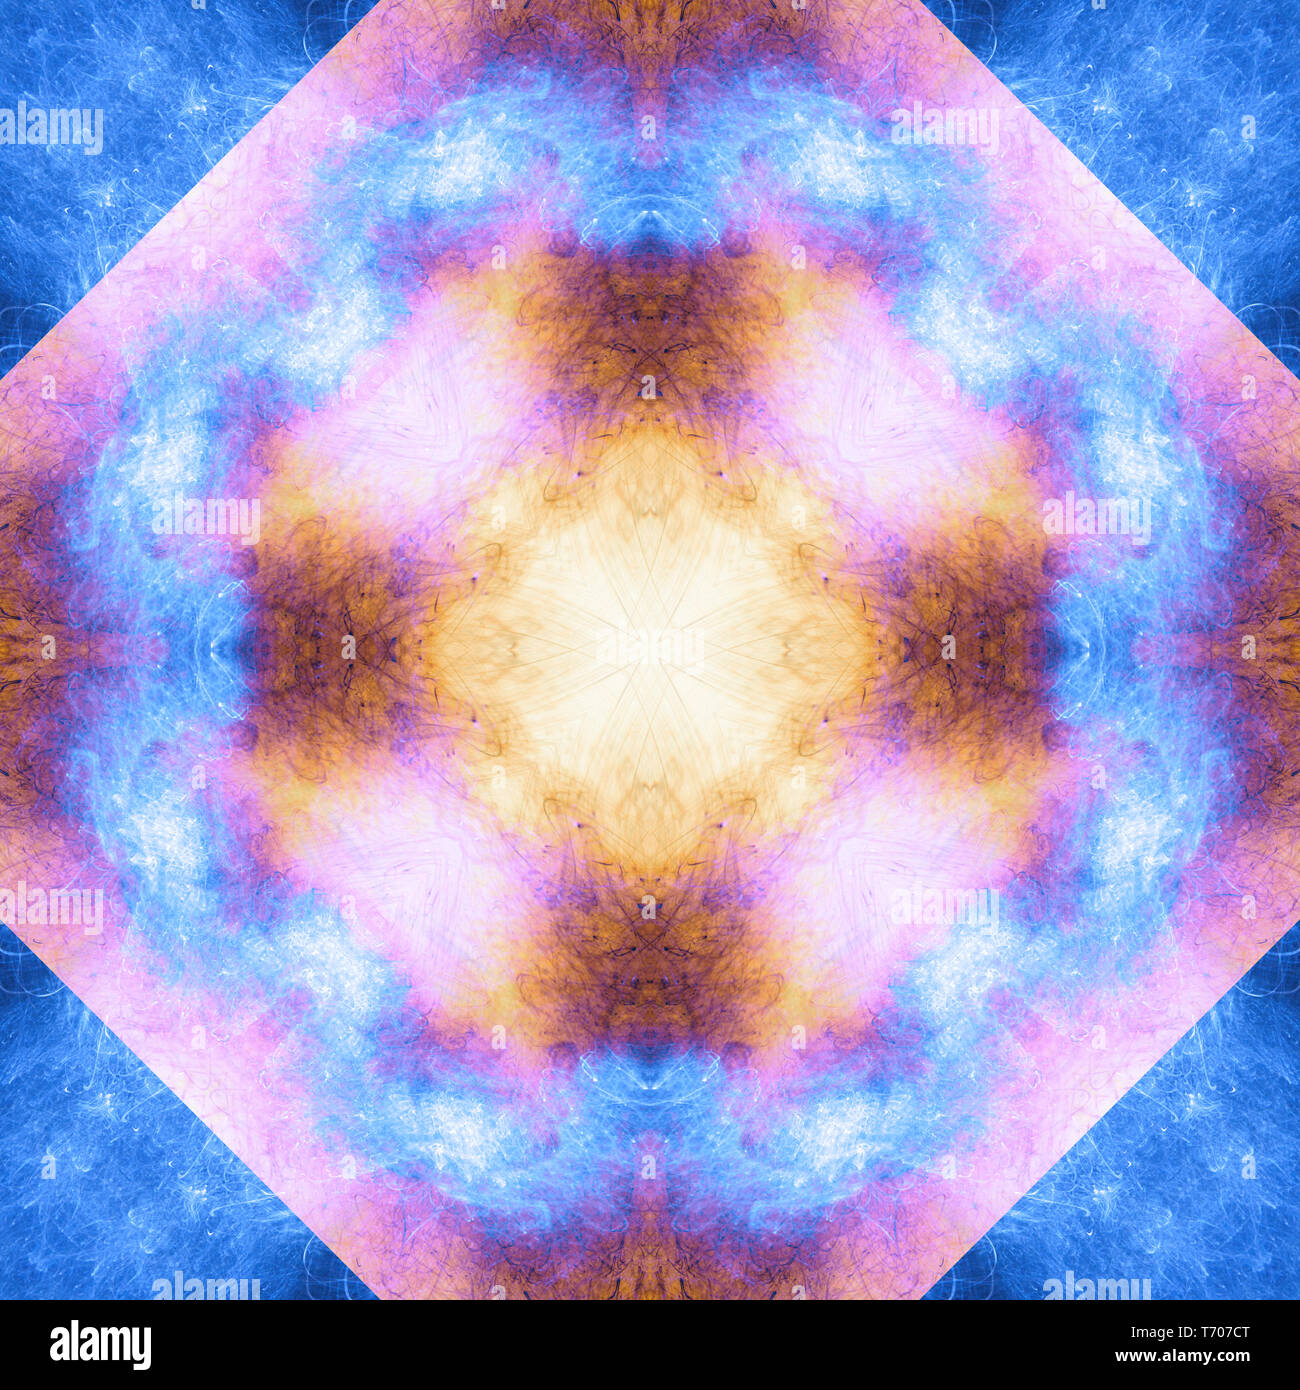 Art psychedelic pattern. Abstract symmetric colorful background. - Stock Image